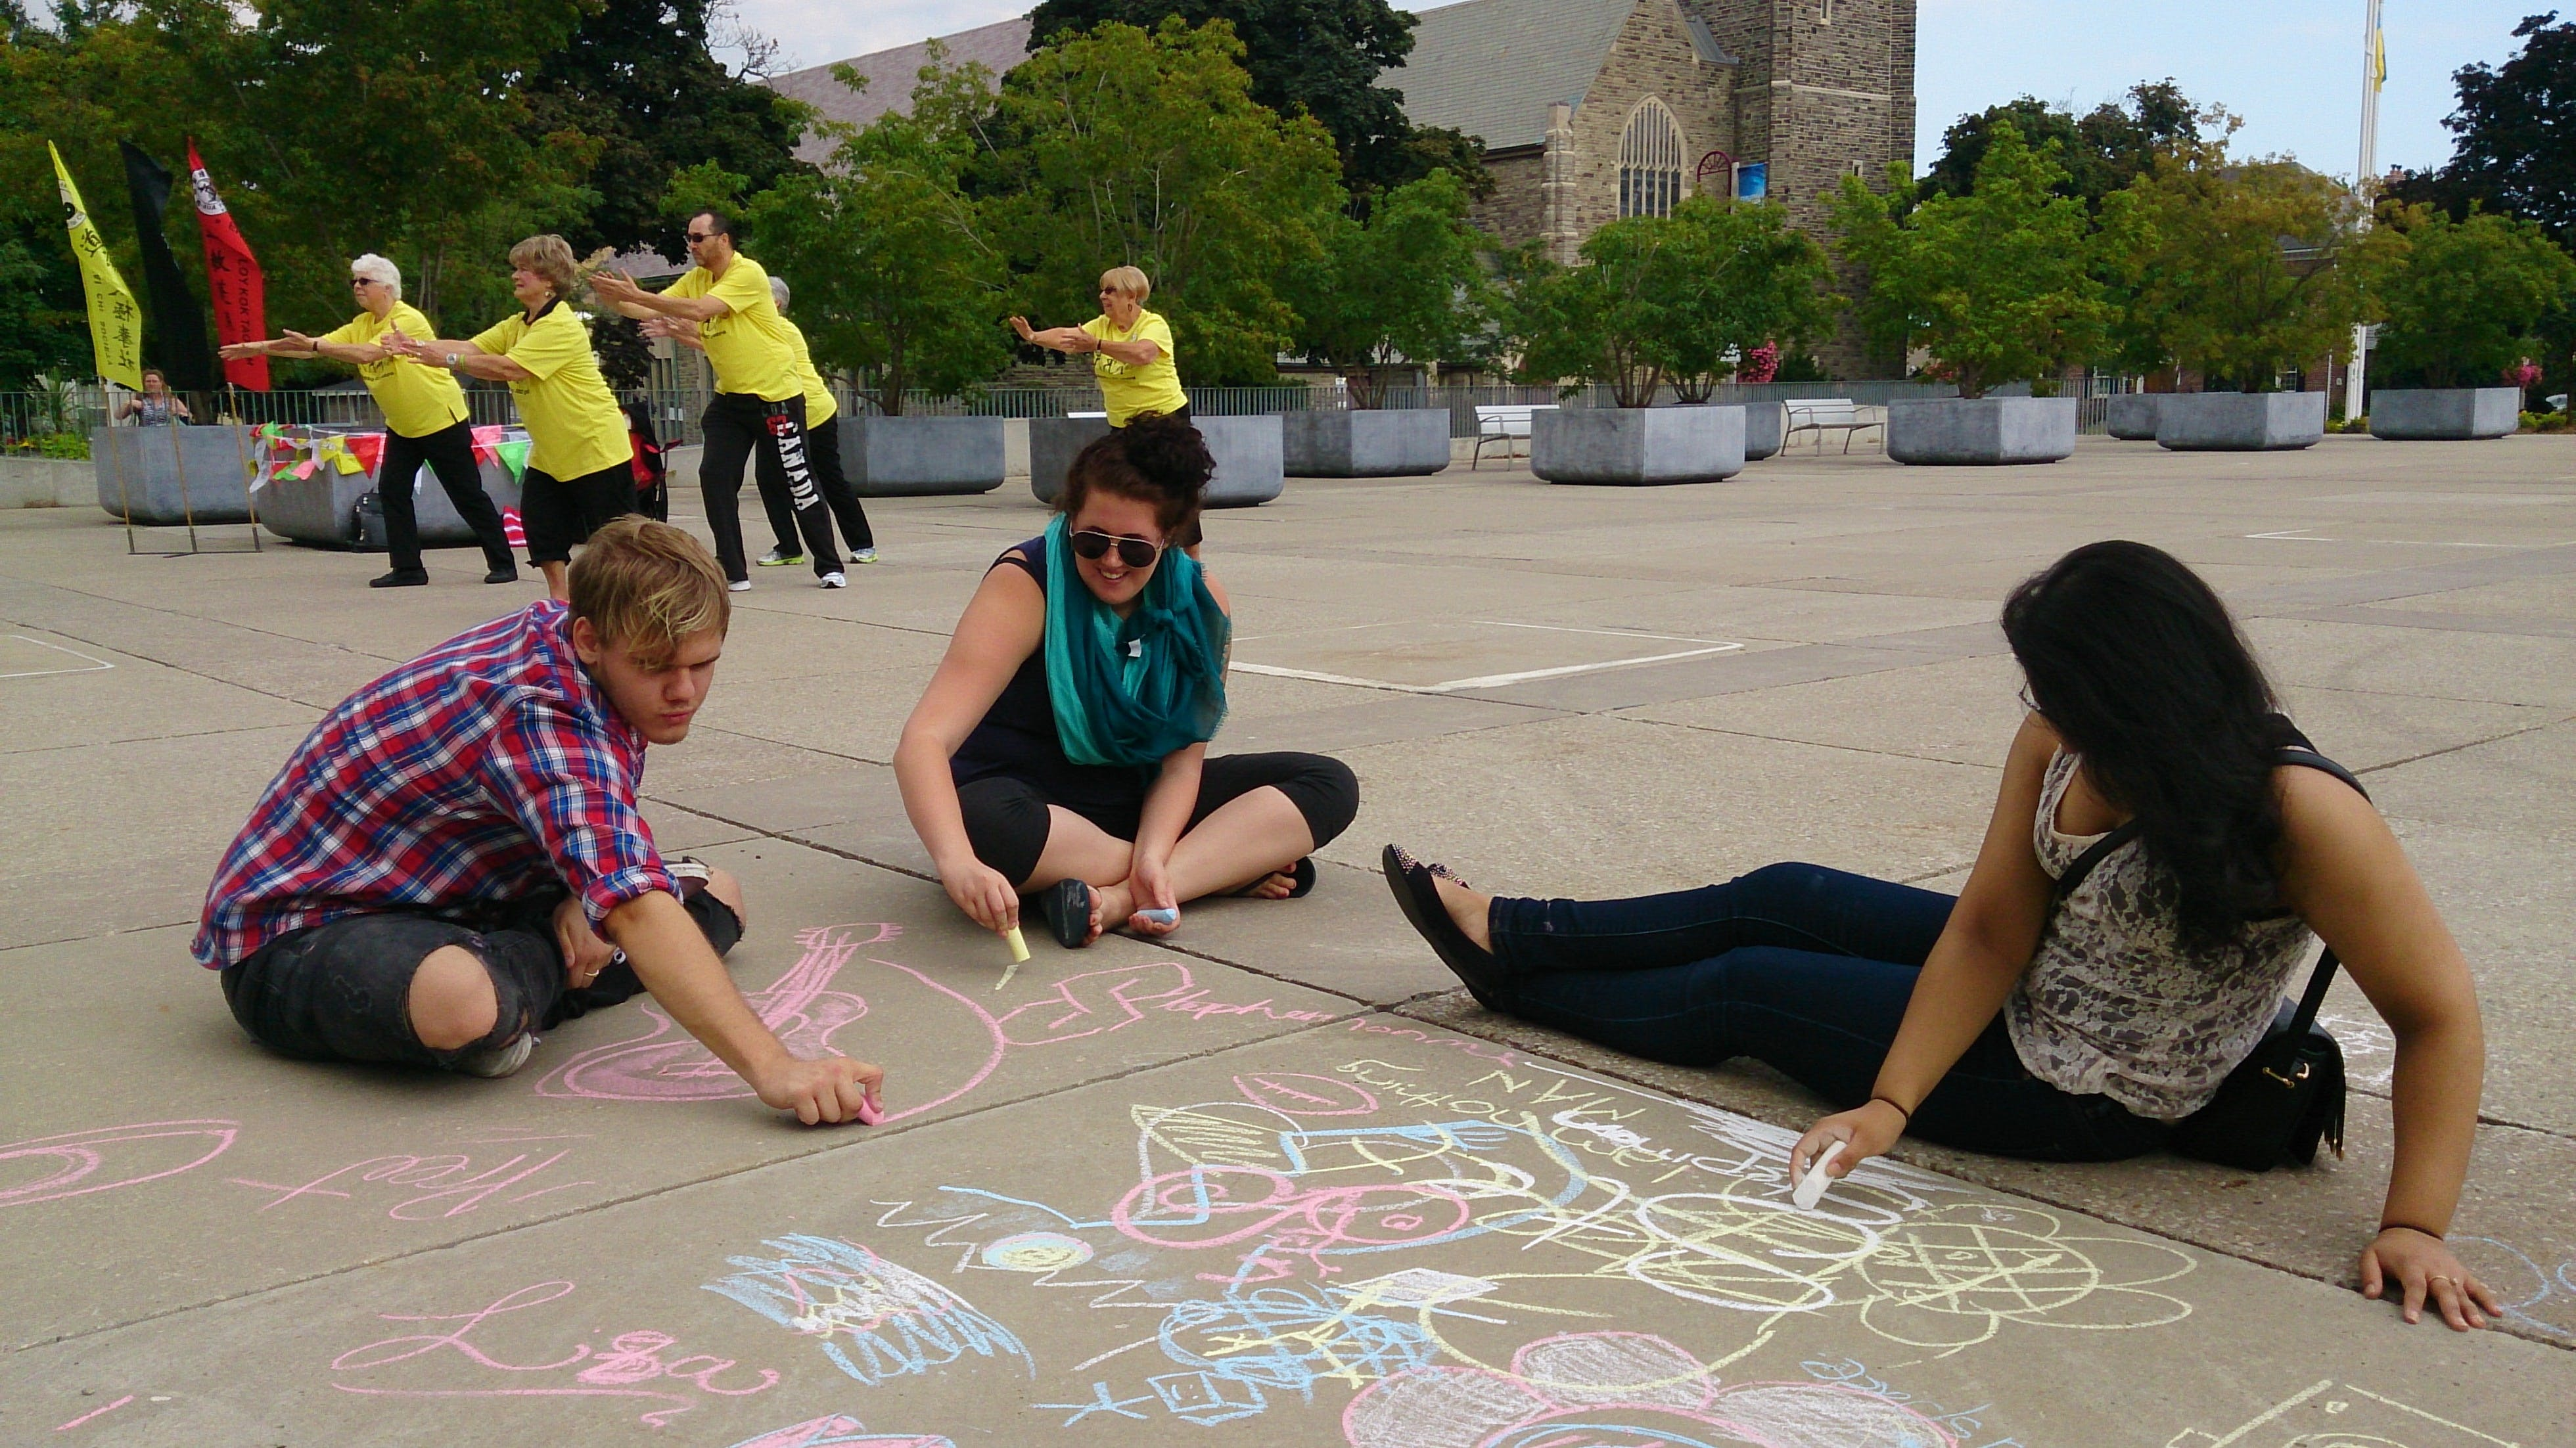 Residents participating in Tai Chi and playing with chalk in Civic Square at a Culture Night.